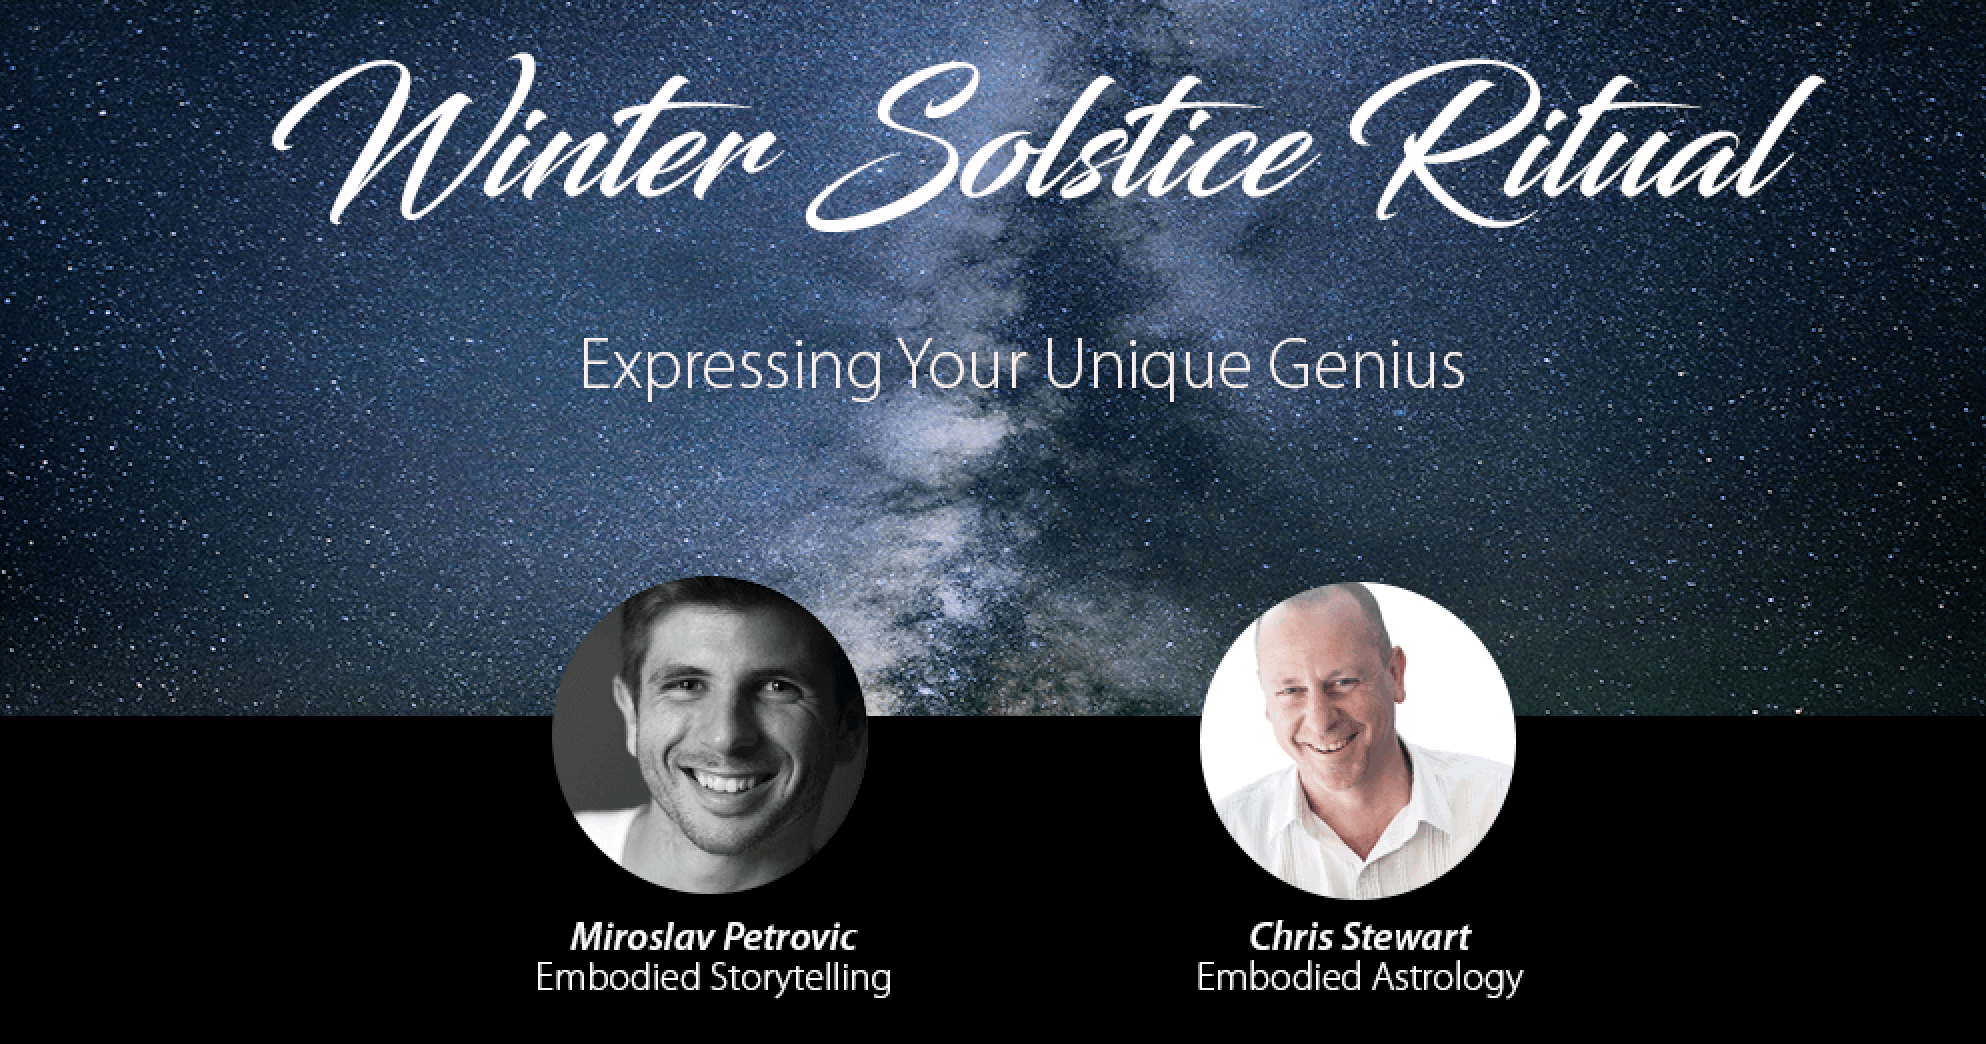 Winter Solstice Ritual - Expressing Your Unique Genius